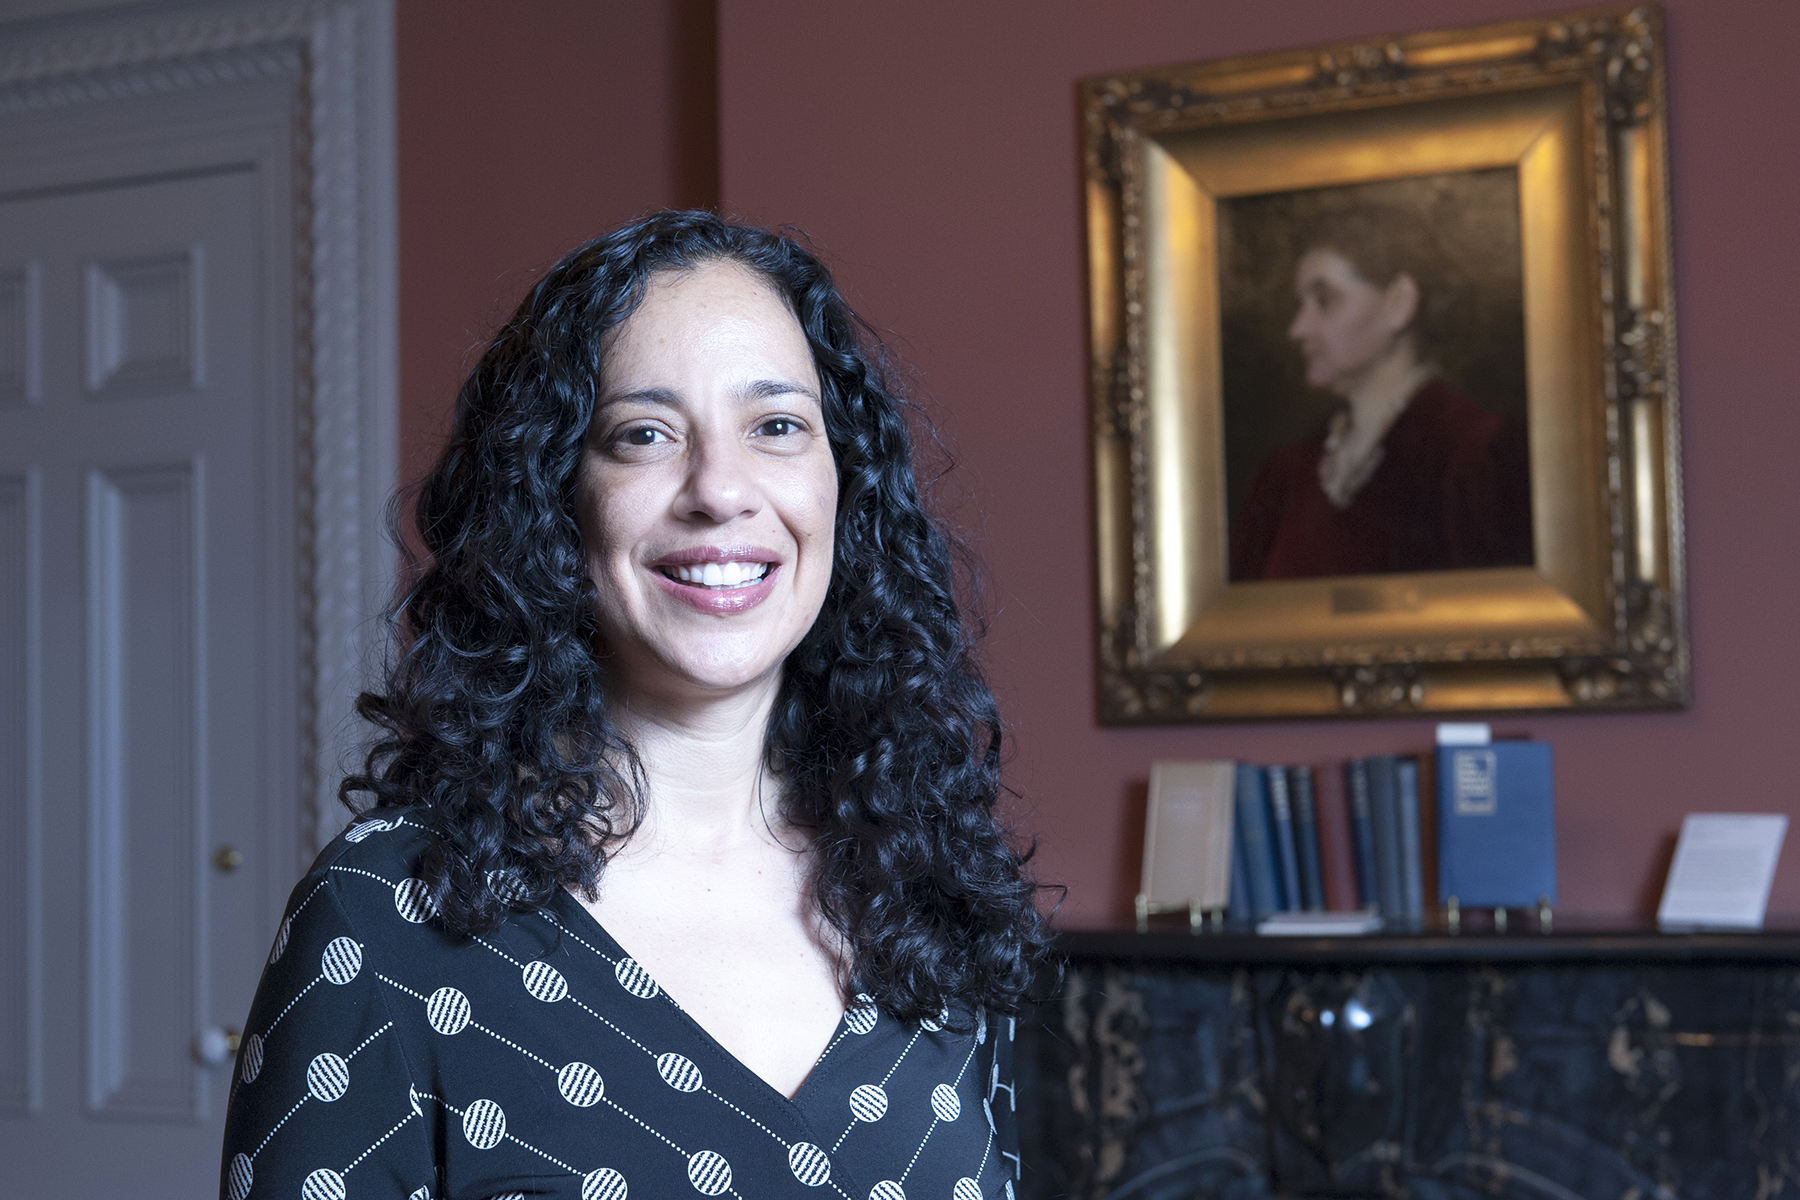 nyc public historian new director of uic's hull-house museum   uic